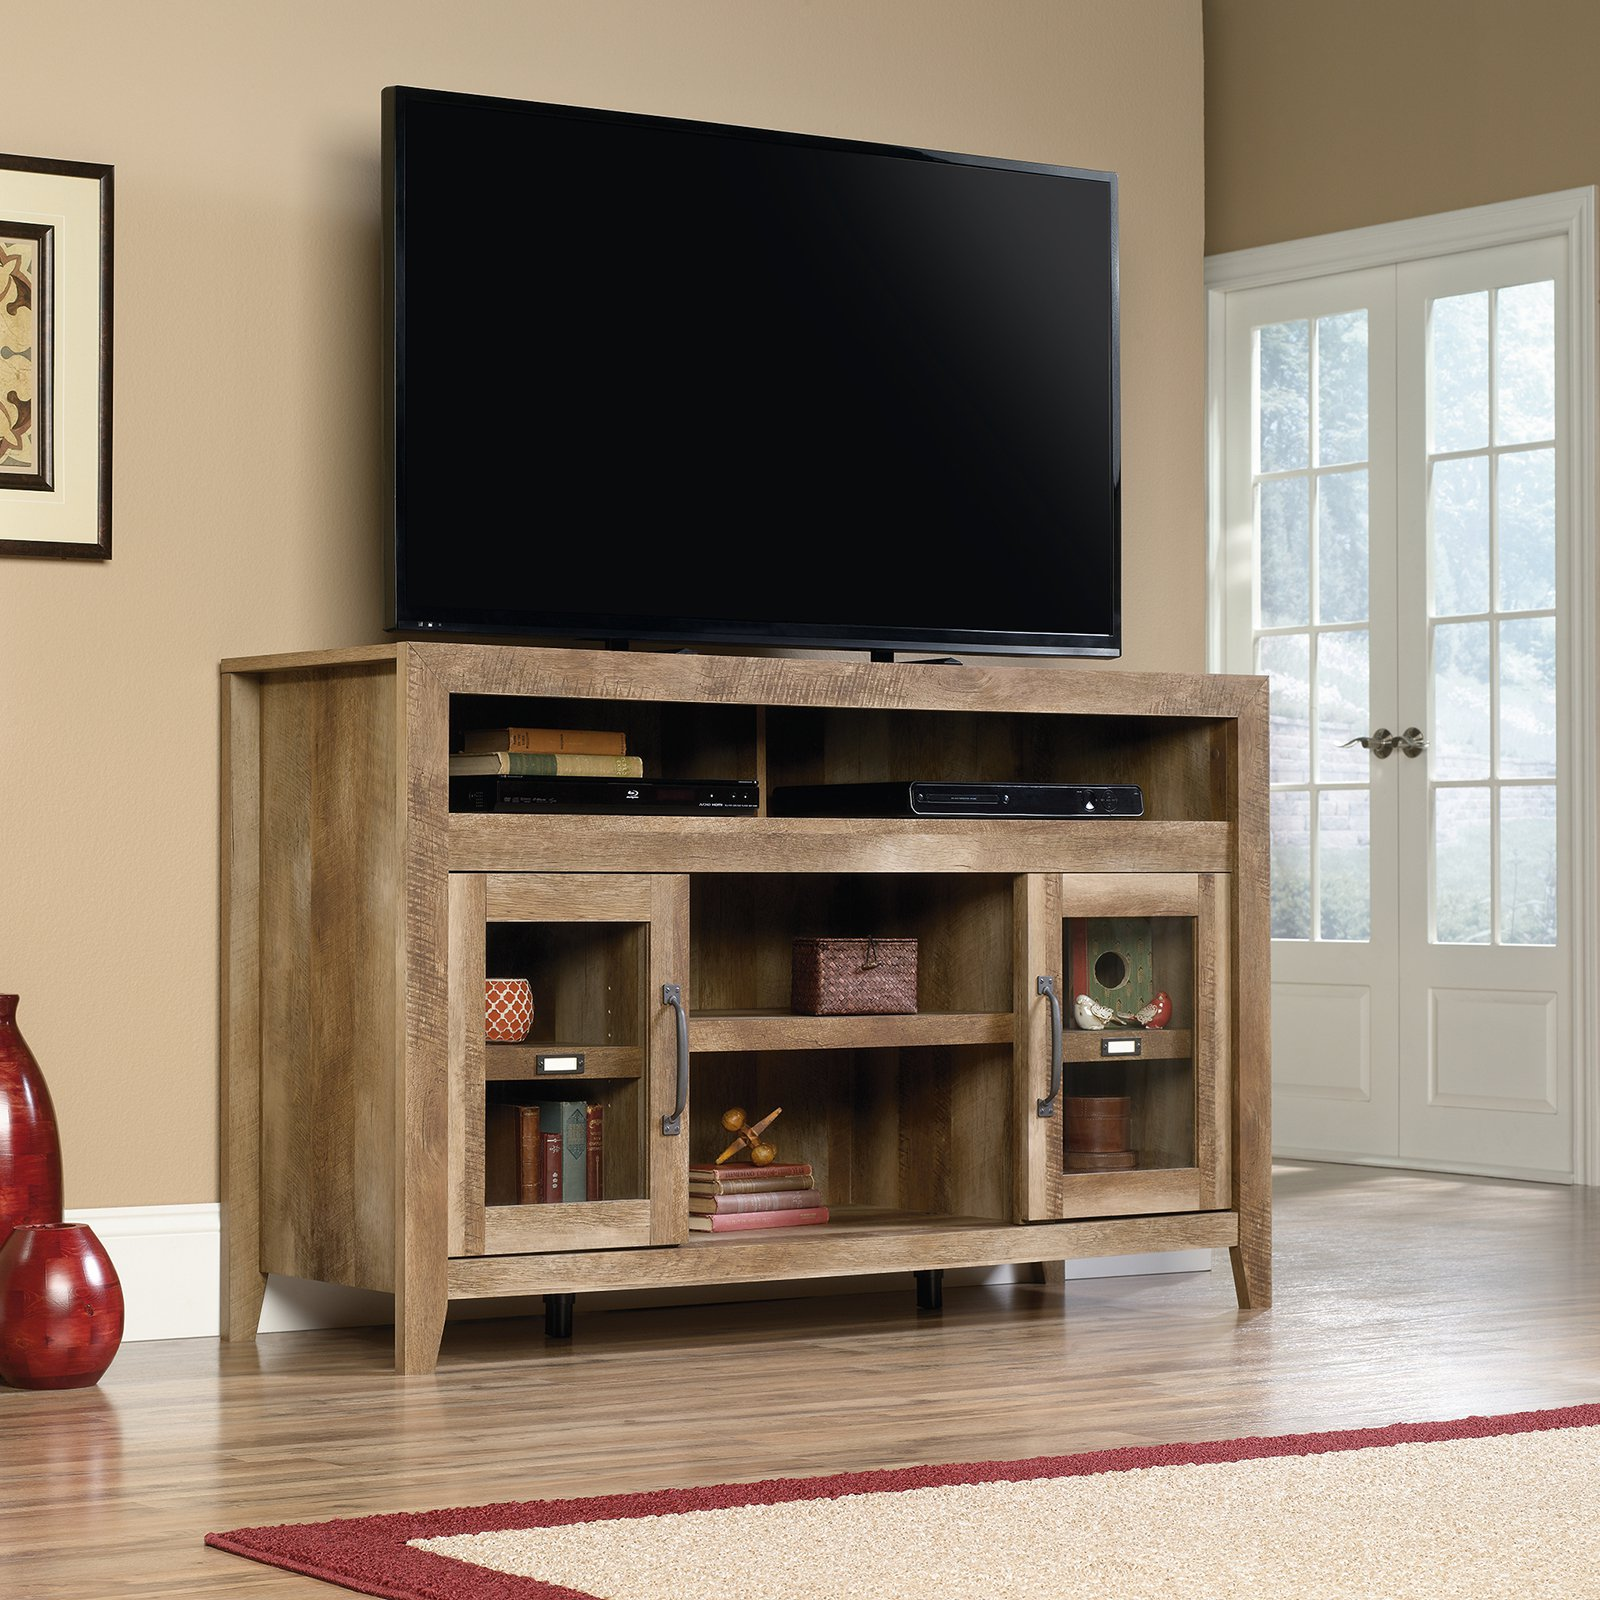 Sauder Stone Valley Entertainment Credenza for TVs up to 60\ by Sauder Woodworking